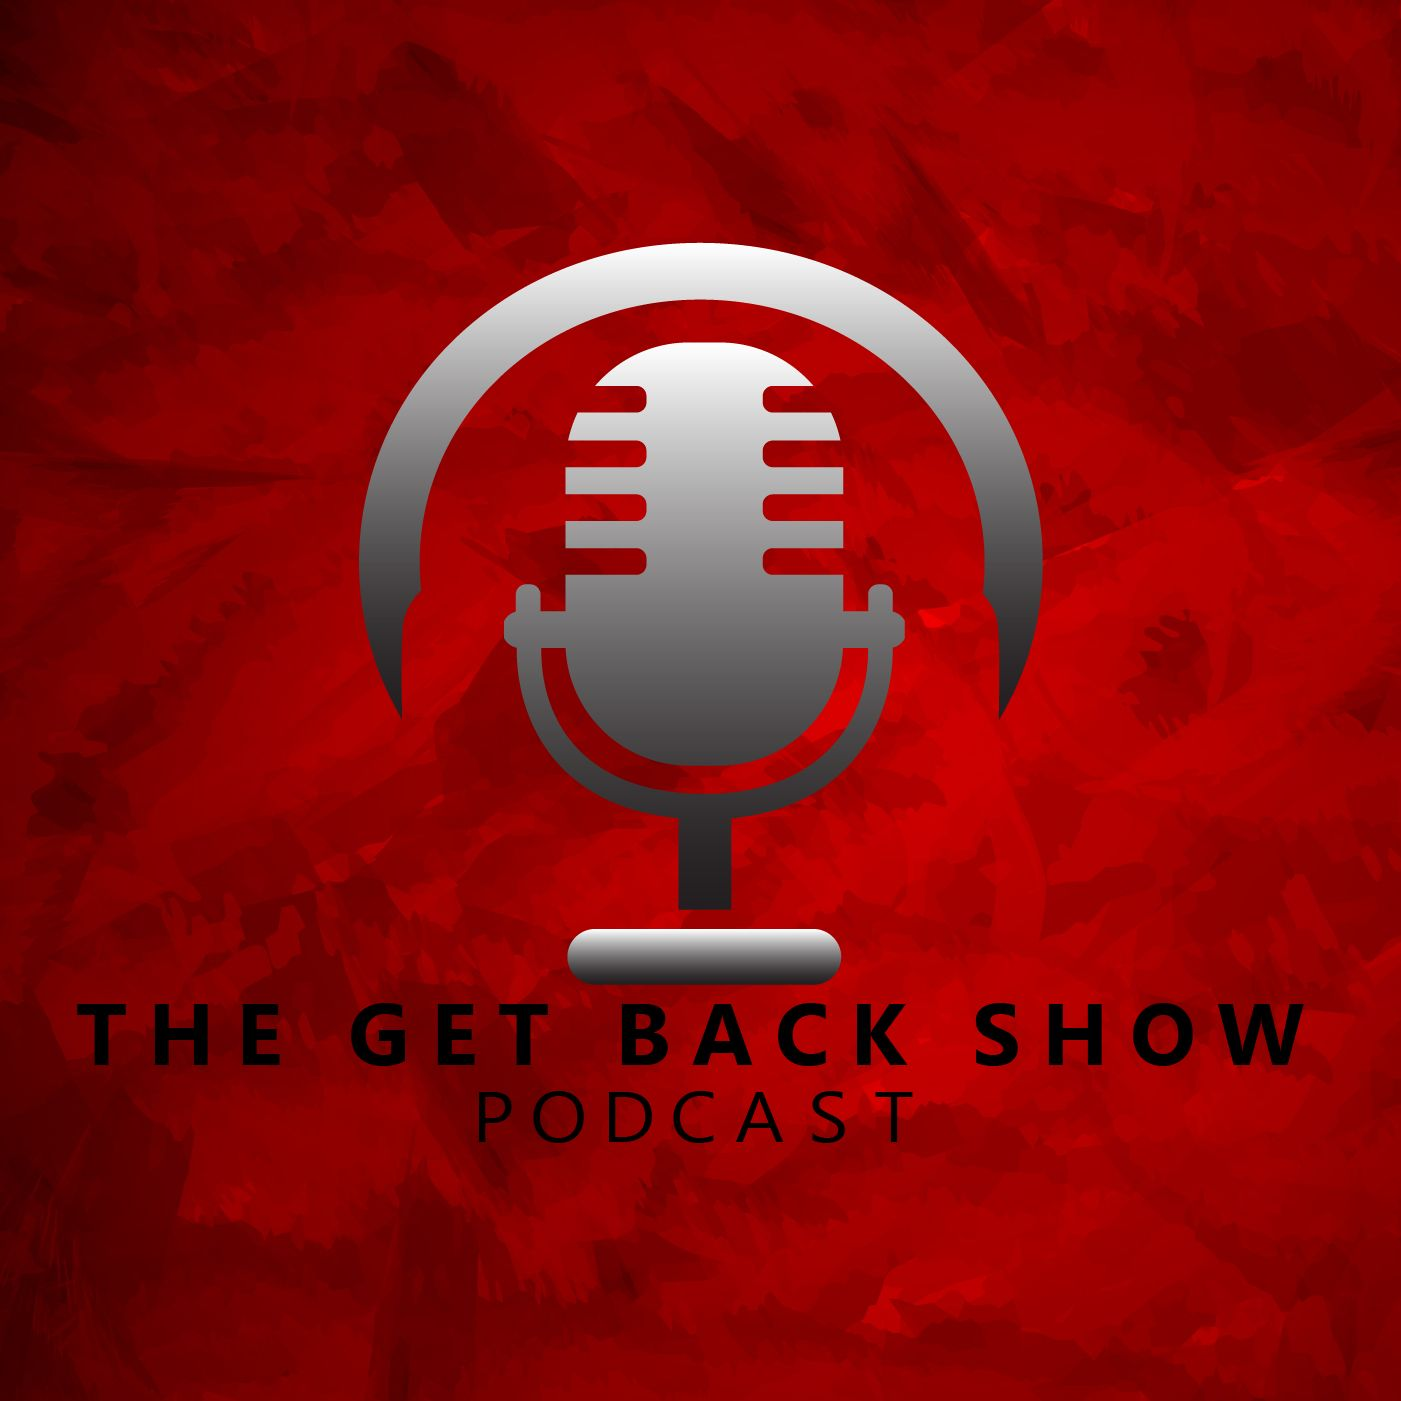 The Get Back Show